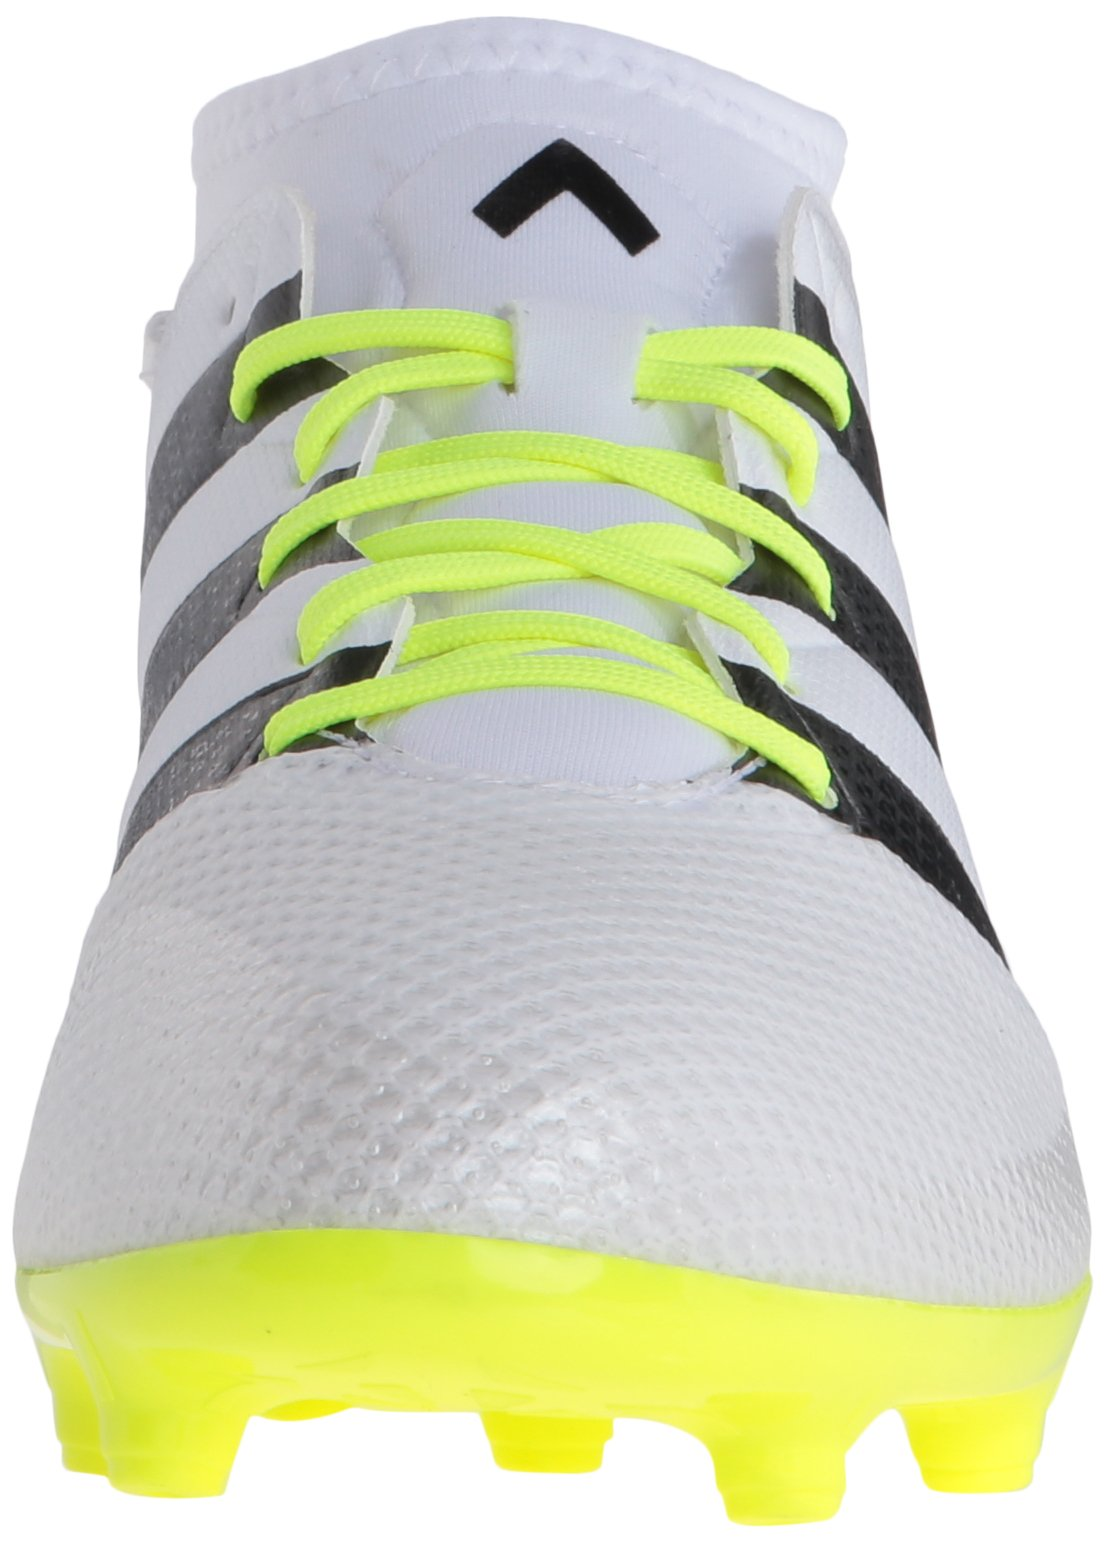 adidas Women's Ace 16.3 Primemesh FG/AG W Soccer Shoe, White/Black/Electricity, 9 M US by adidas (Image #4)